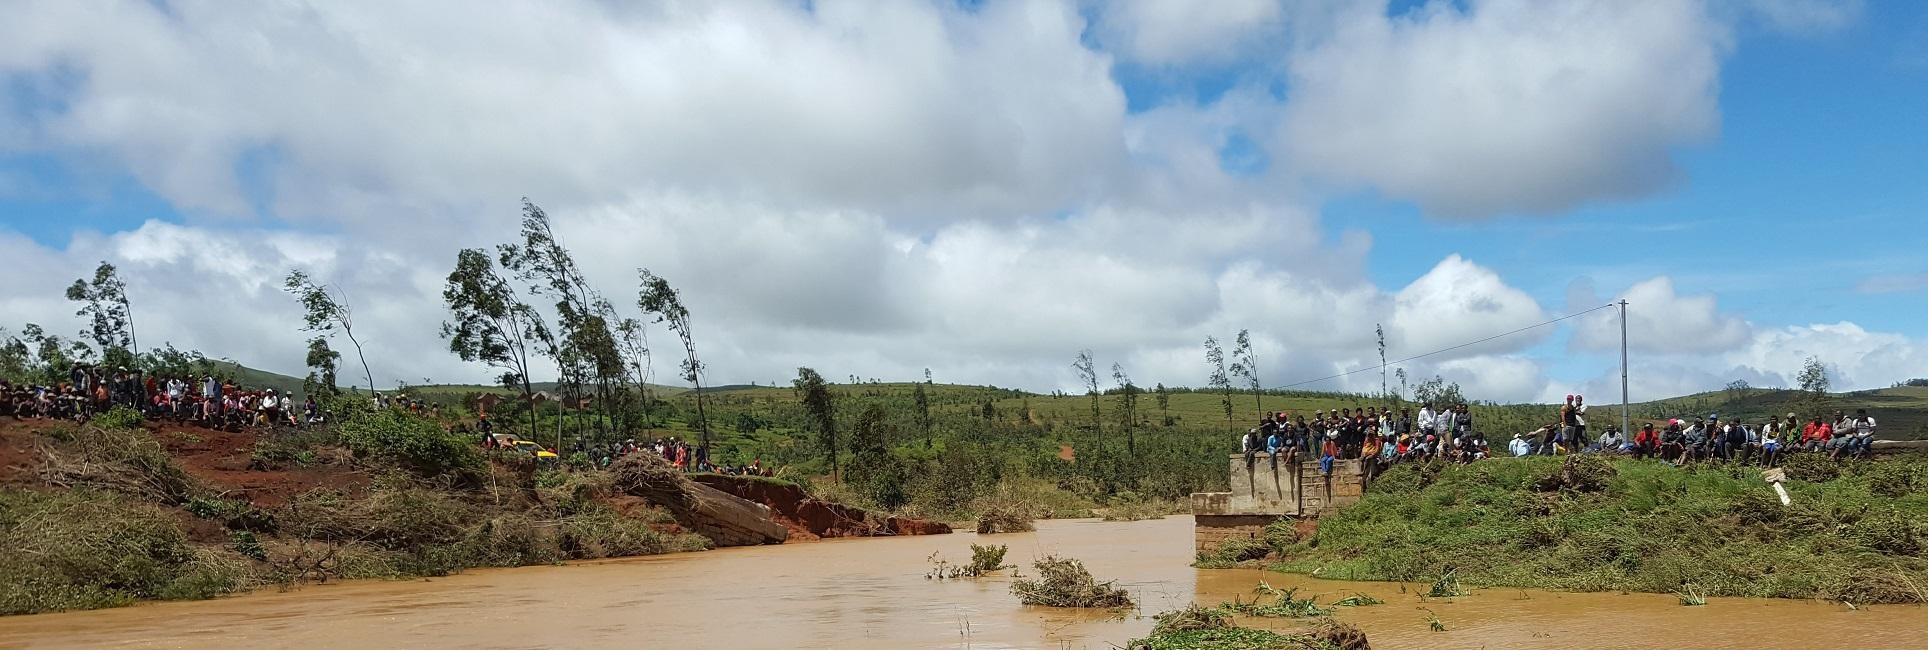 Cyclone Ava caused massive destruction in southeast Madagascar.